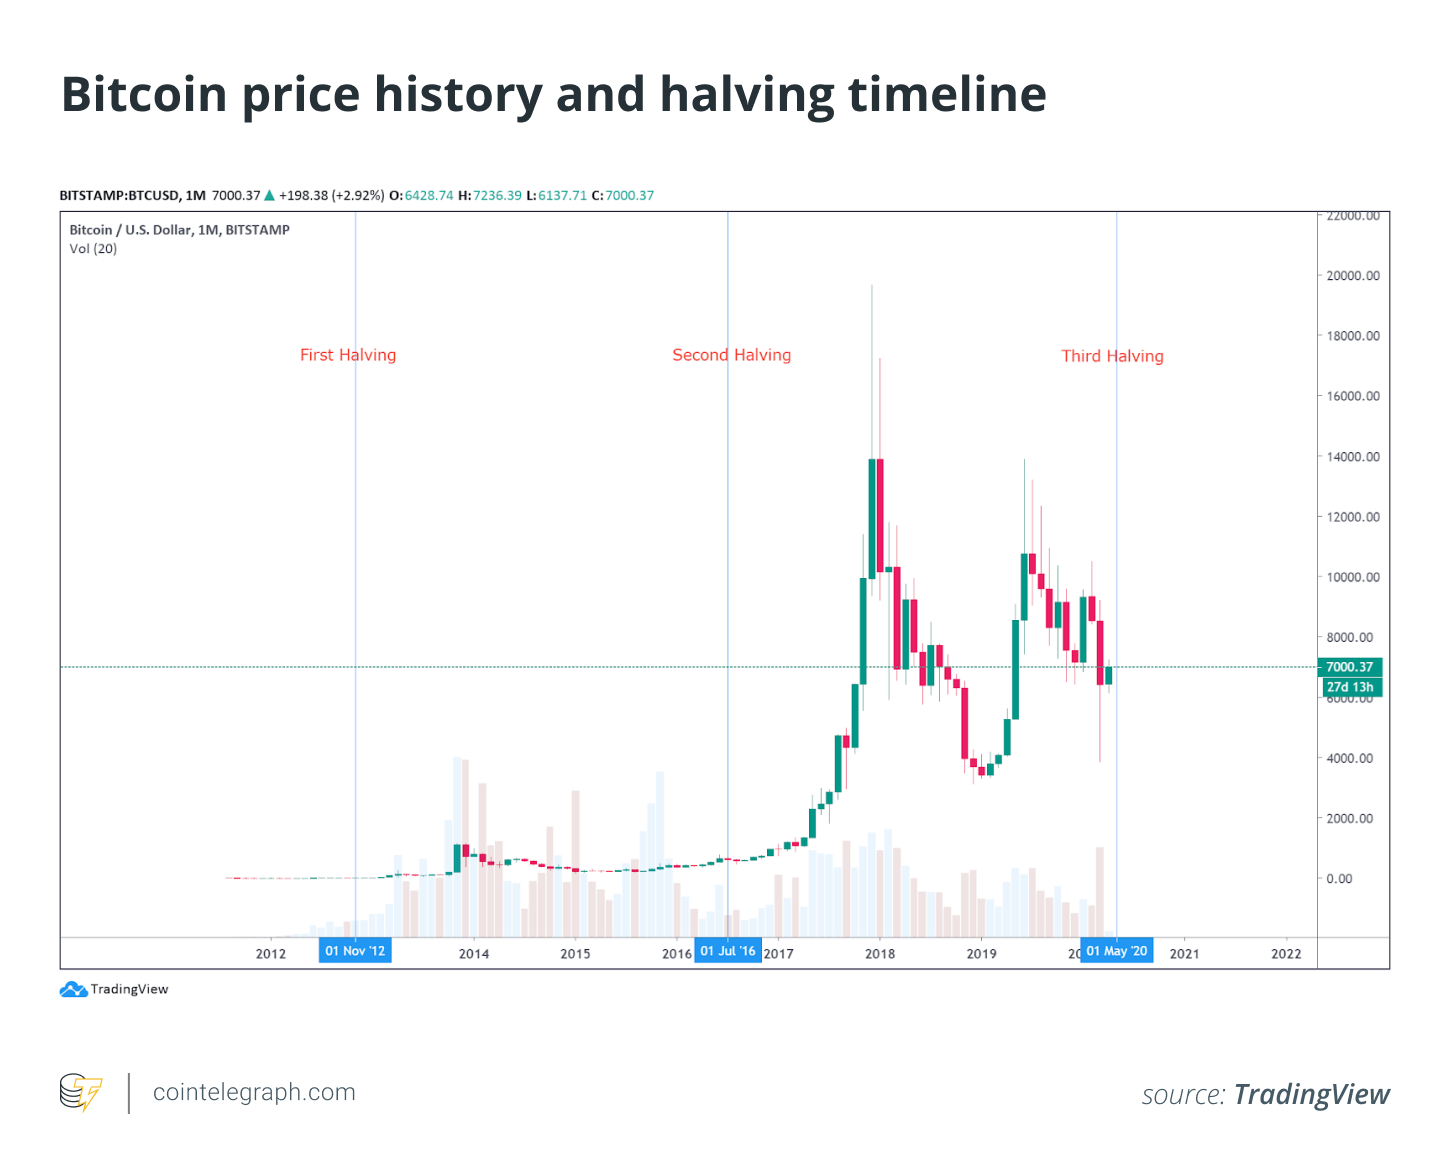 BTC USDT 1-month chart. Source: TradingView